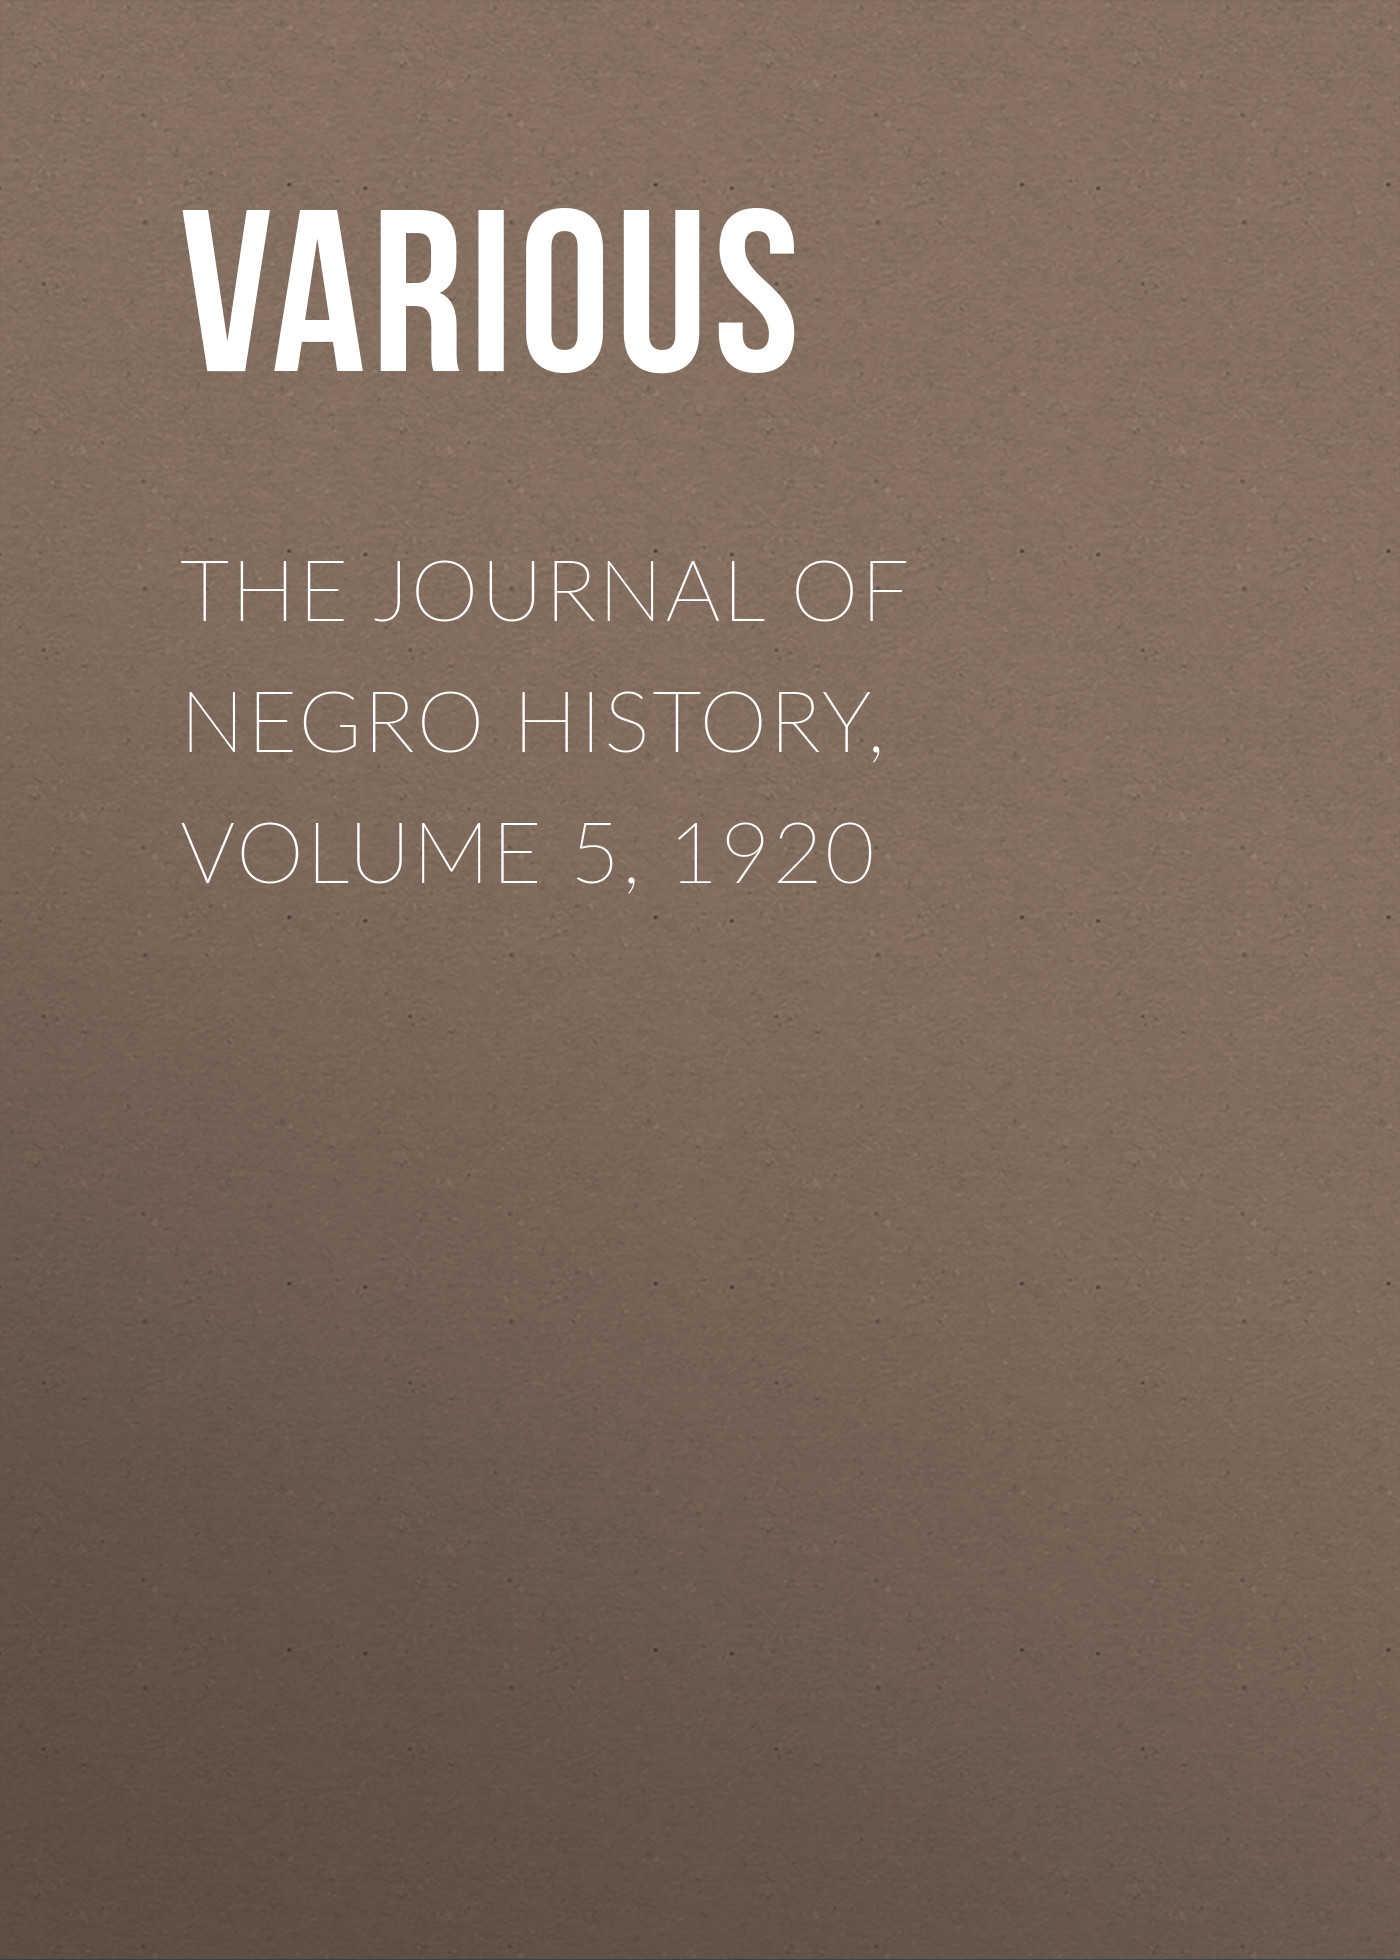 Various The Journal of Negro History, Volume 5, 1920